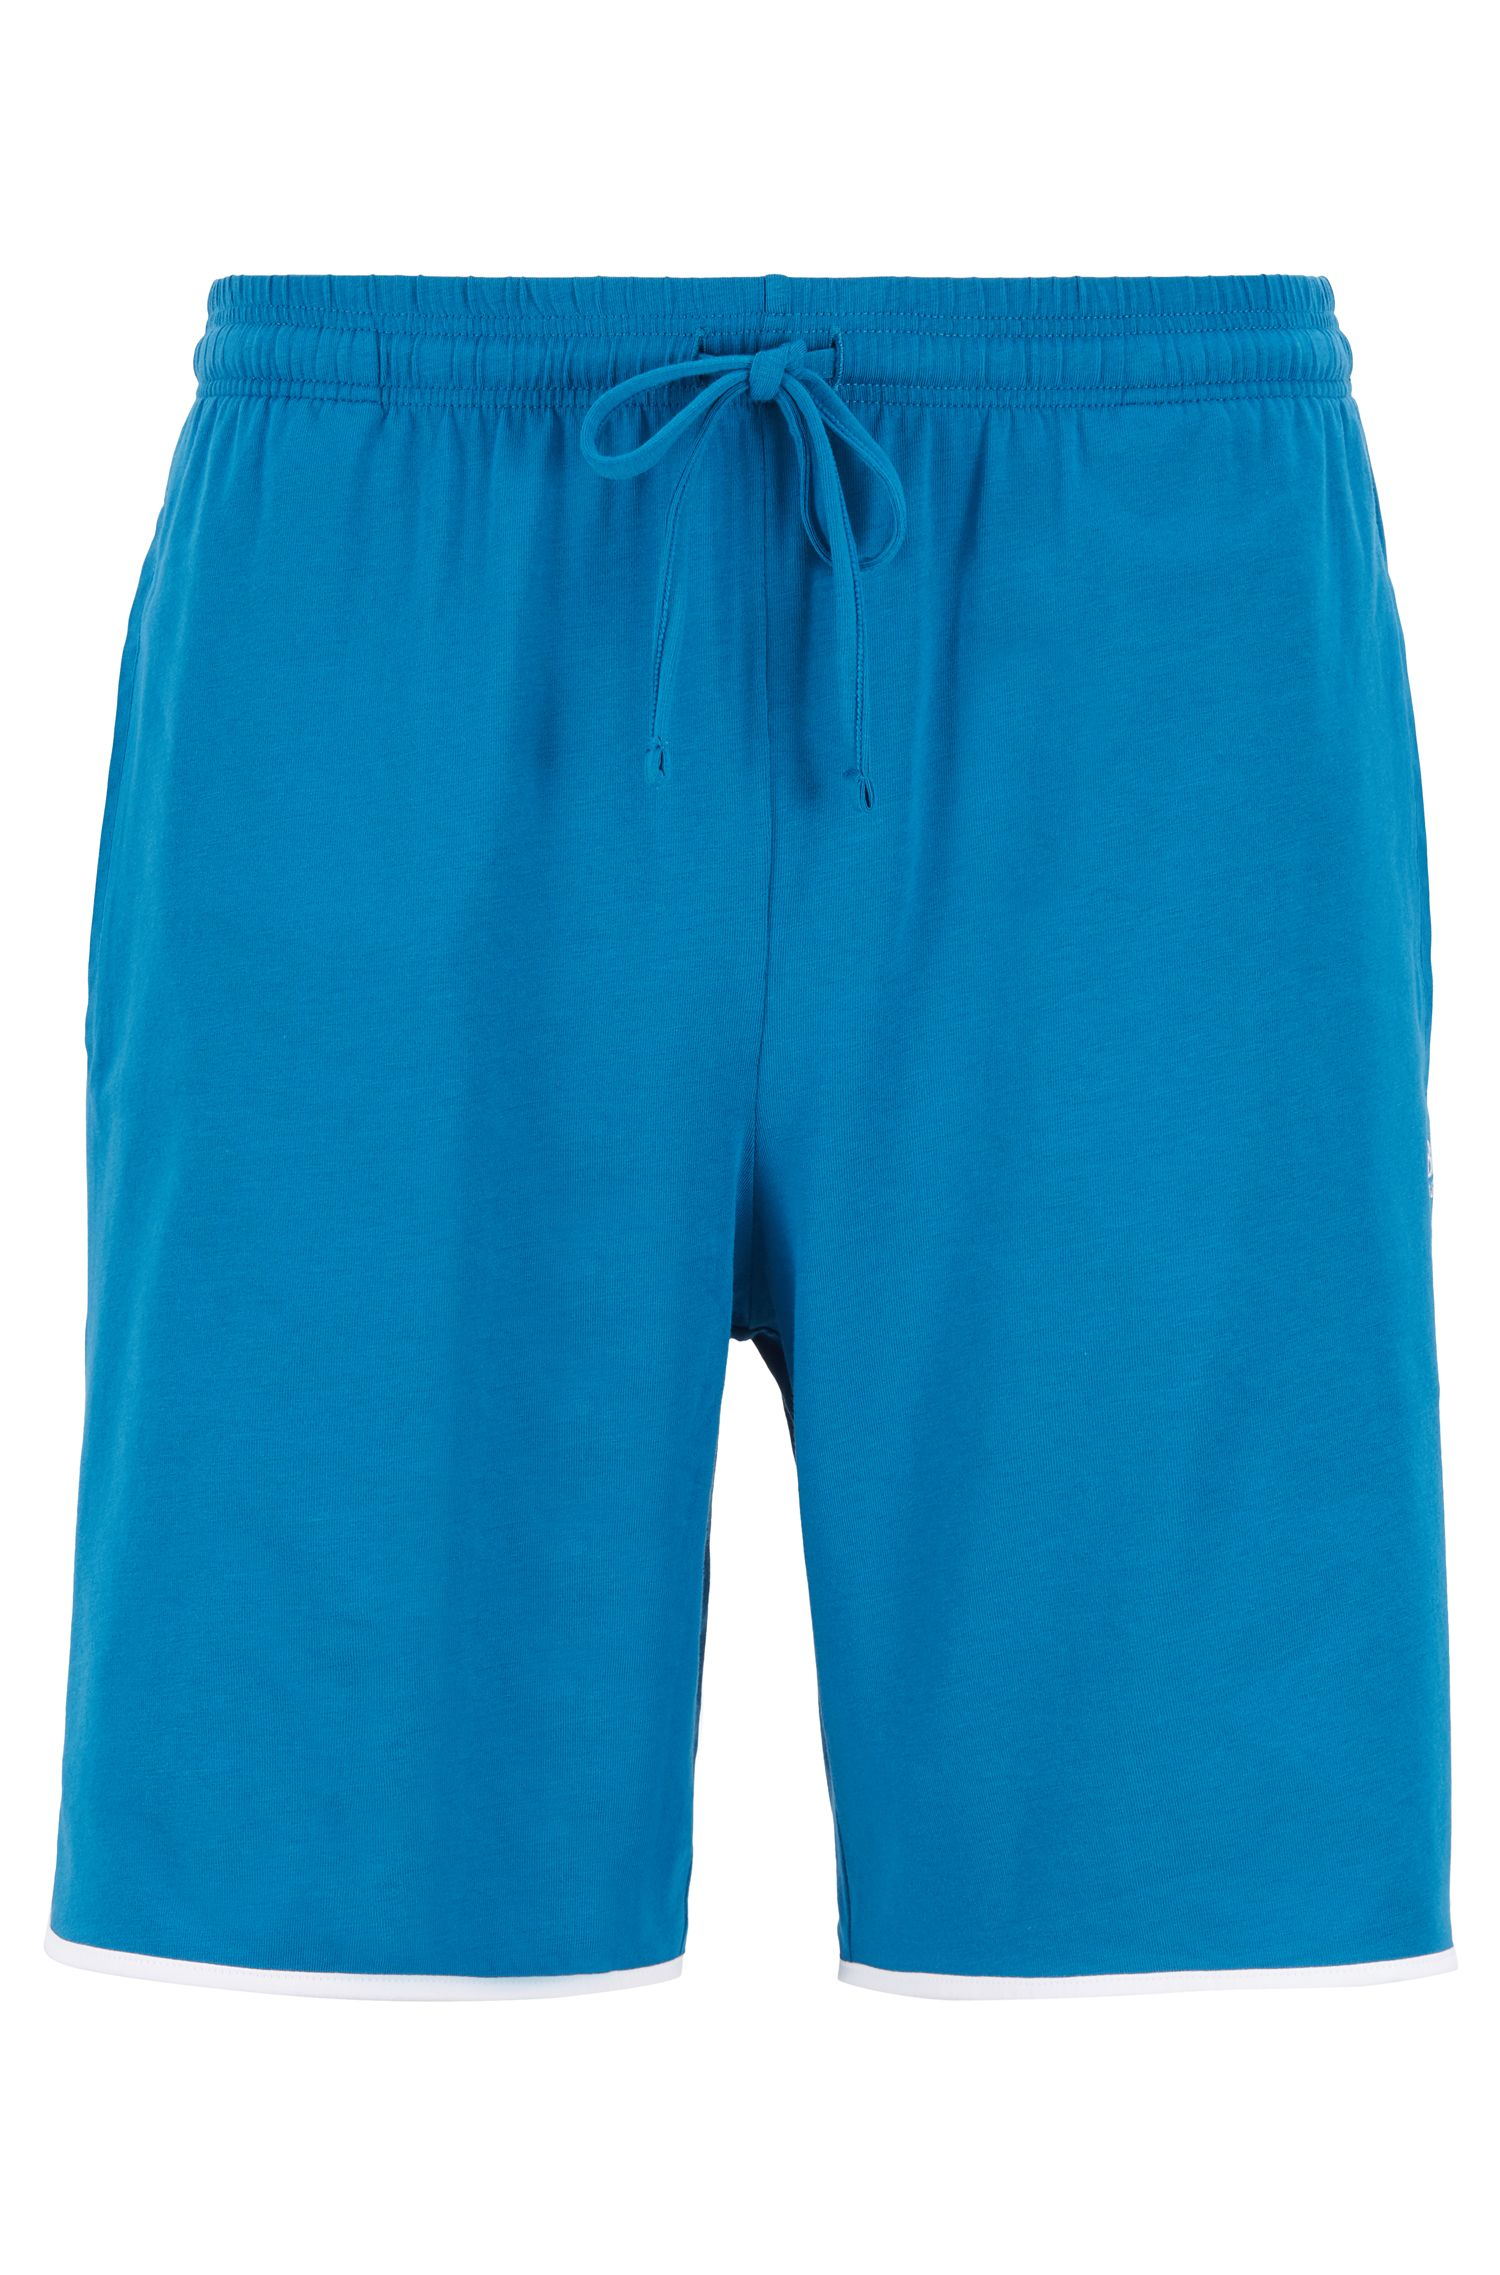 Loungewear shorts in stretch cotton with contrast piping, Turquoise